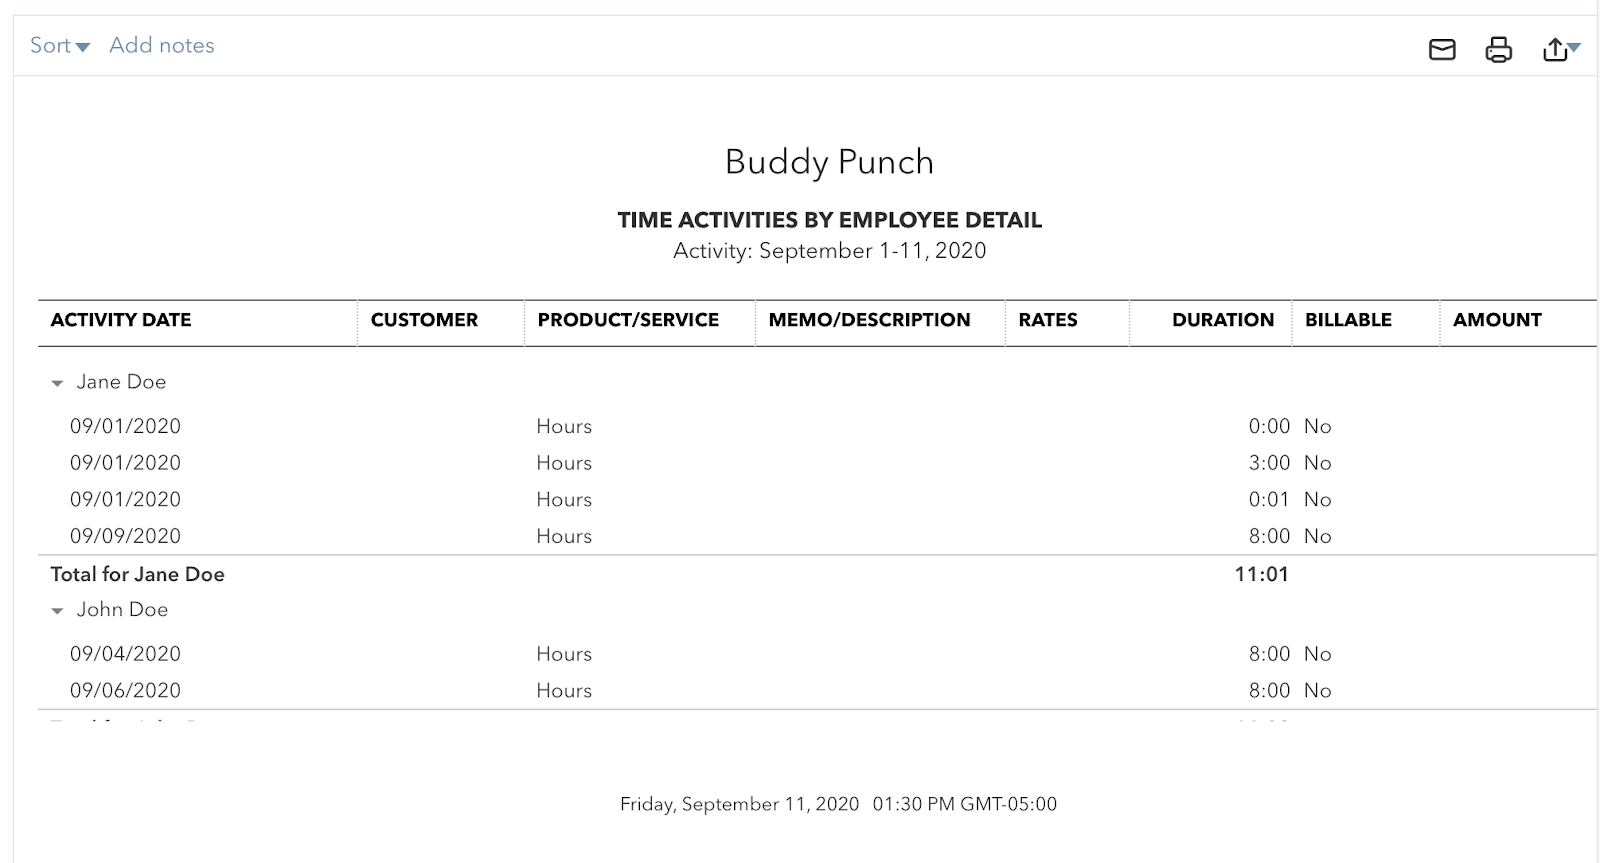 Buddy Punch Time Activities by Employee Detail